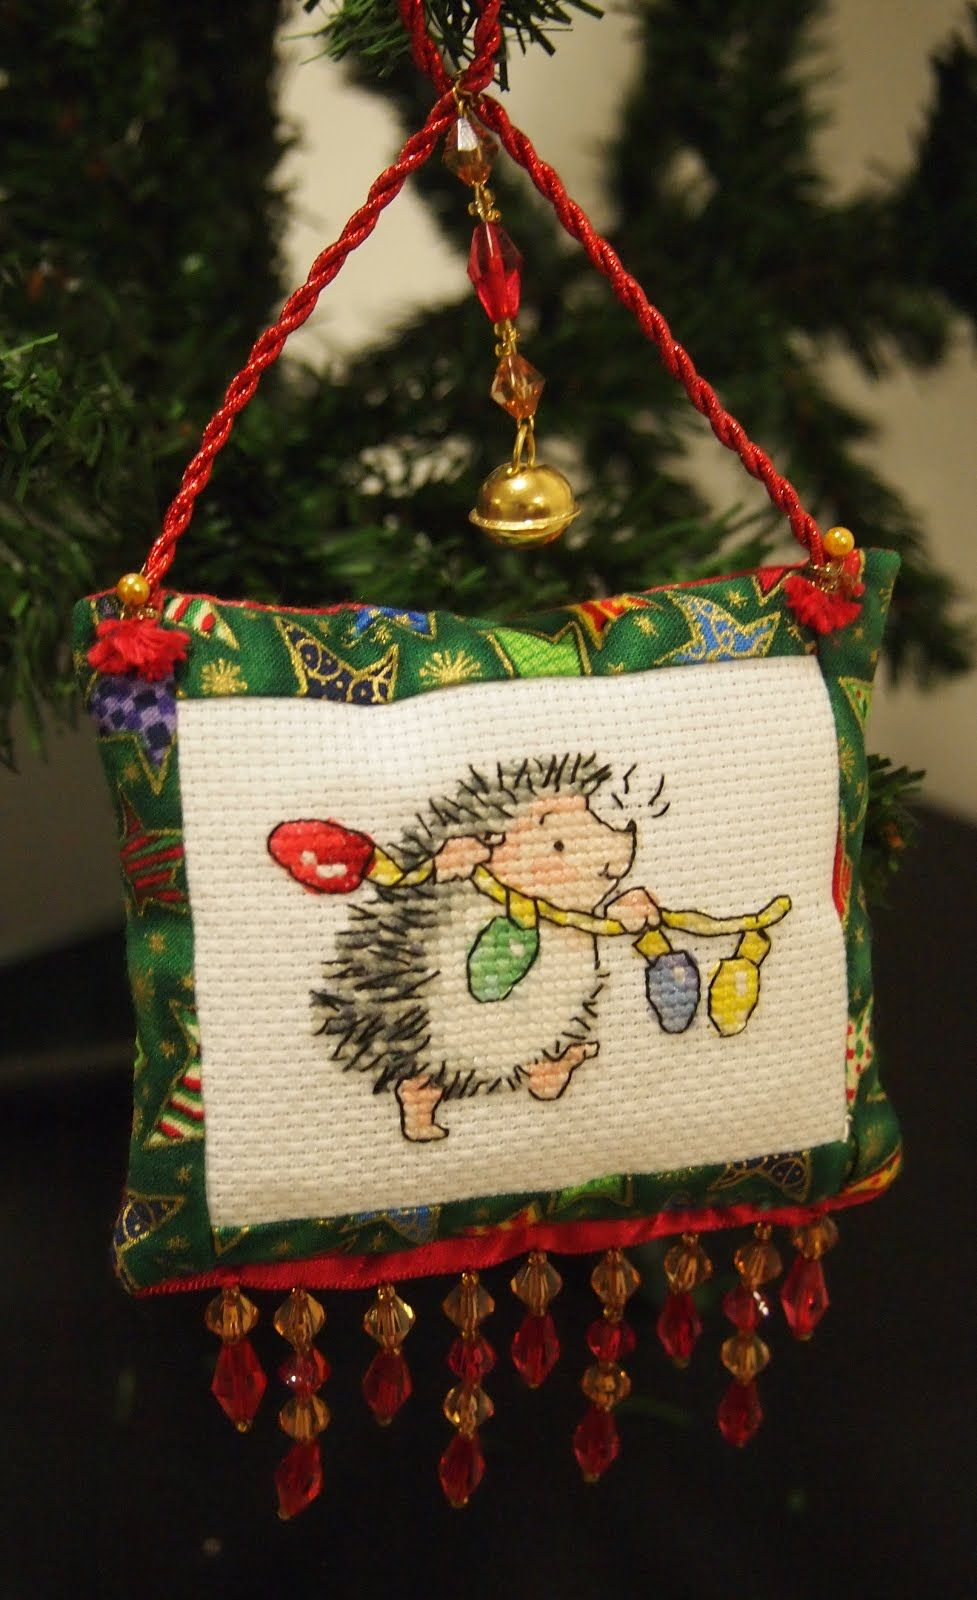 Margaret Sherry Lovers ~ Group Blog ~: Christmas Exchange from Australia to Portugal :)